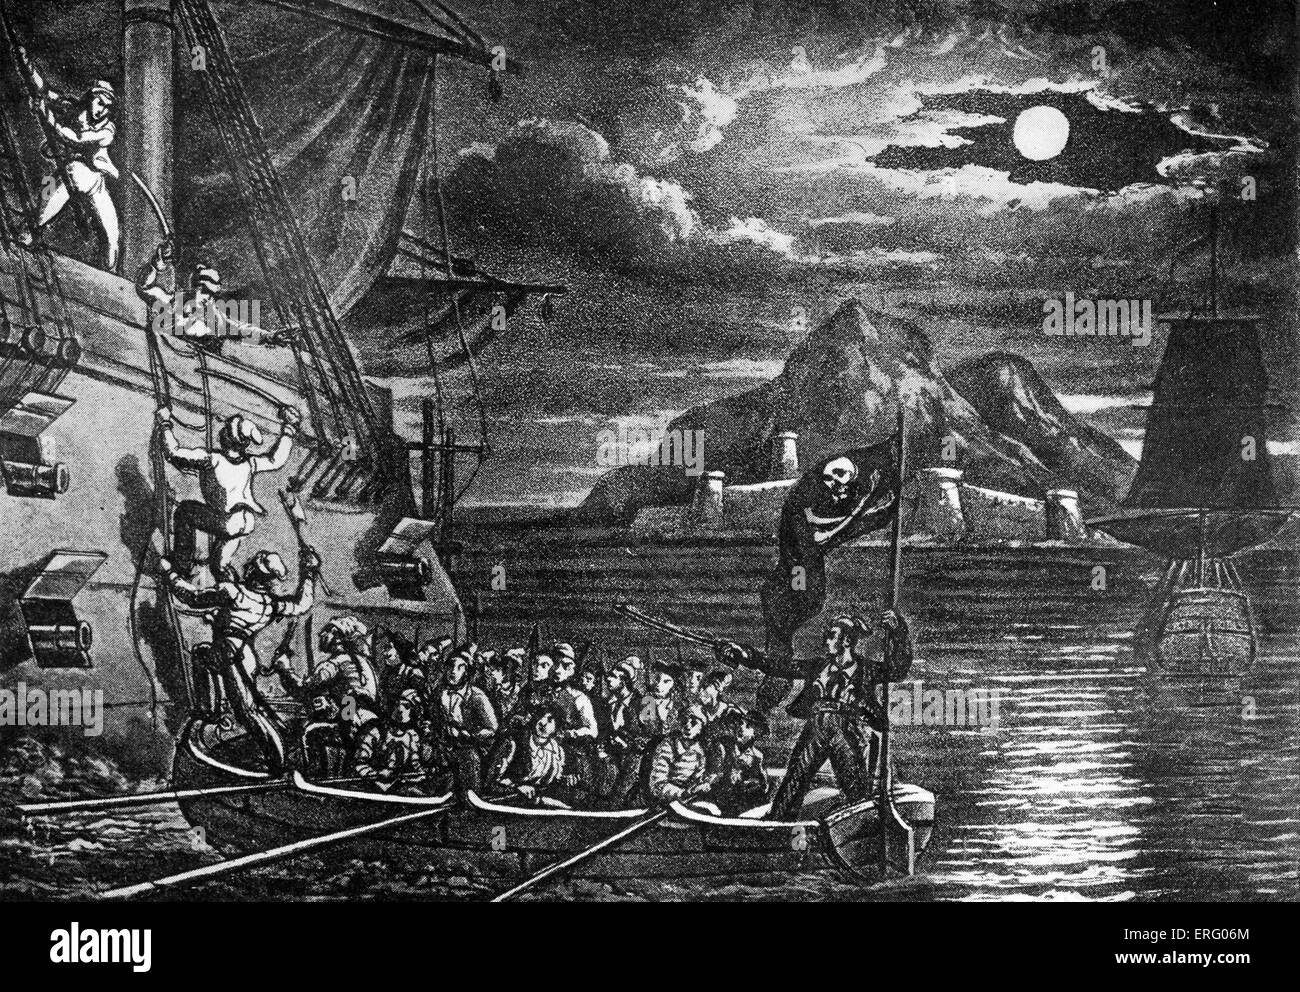 'Pirates Boarding a Spanish Vessel in the West Indies', engraving from 'The History and Lives of the - Stock Image